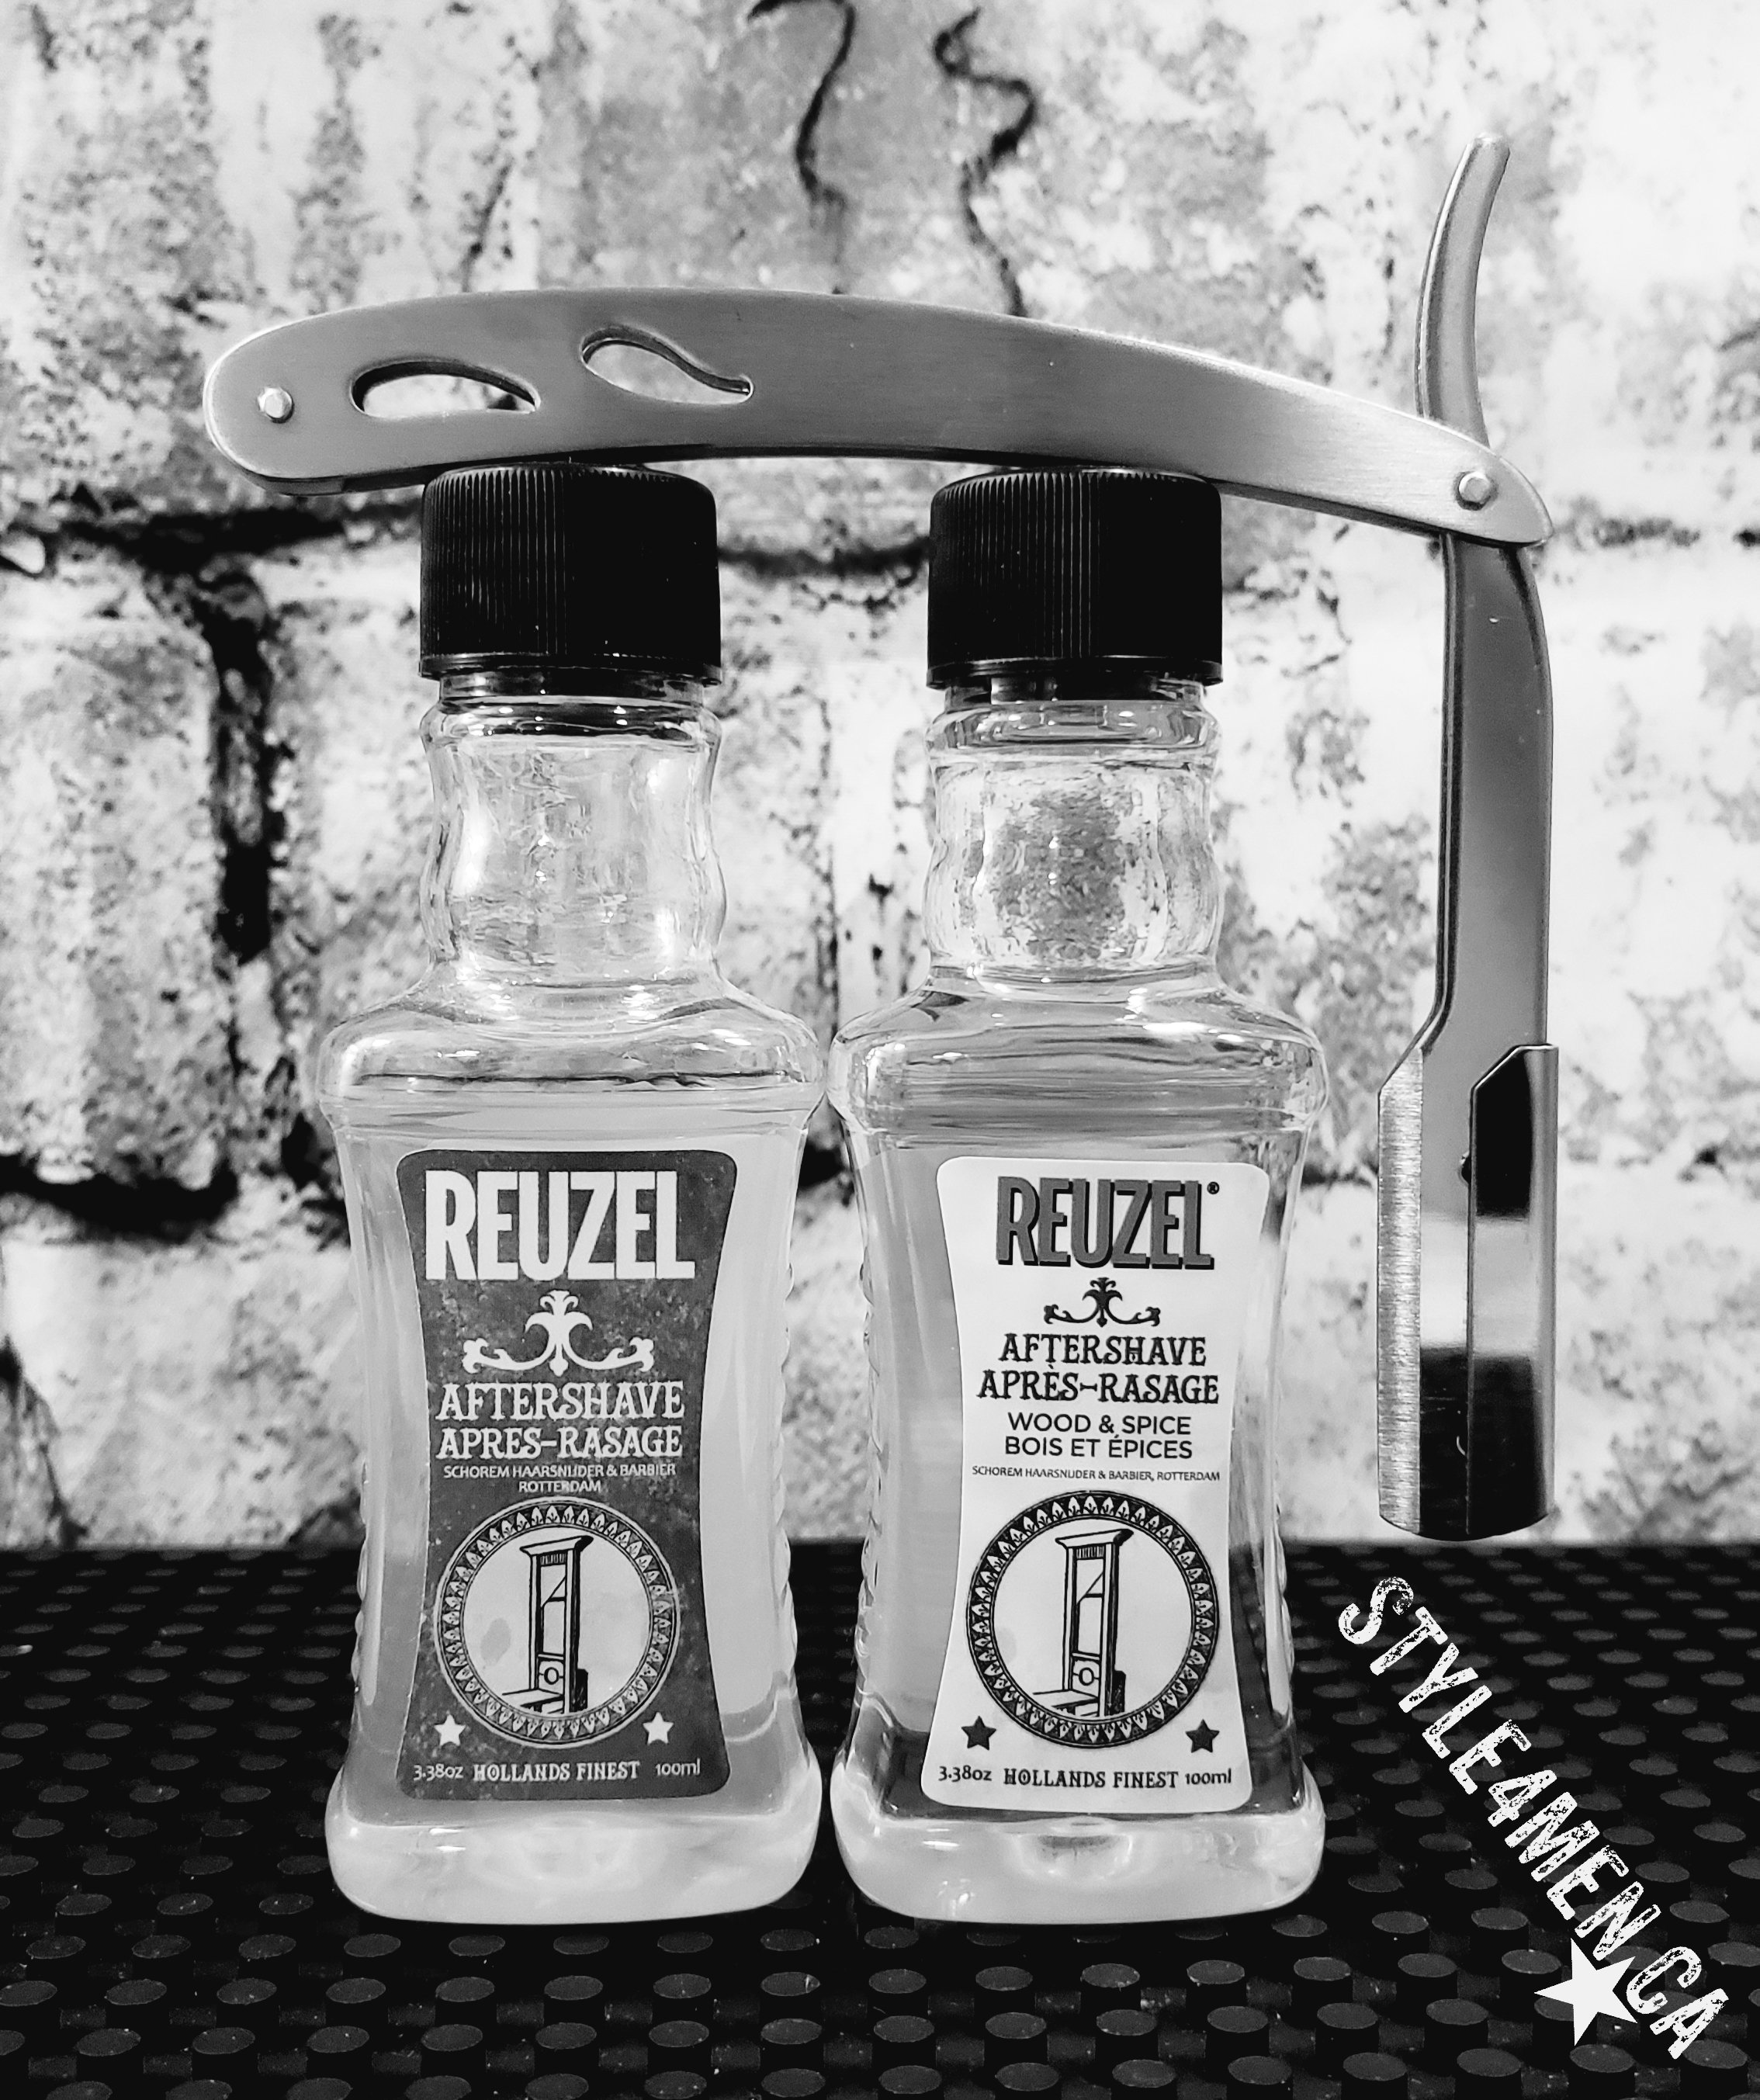 REUZEL aftershaves